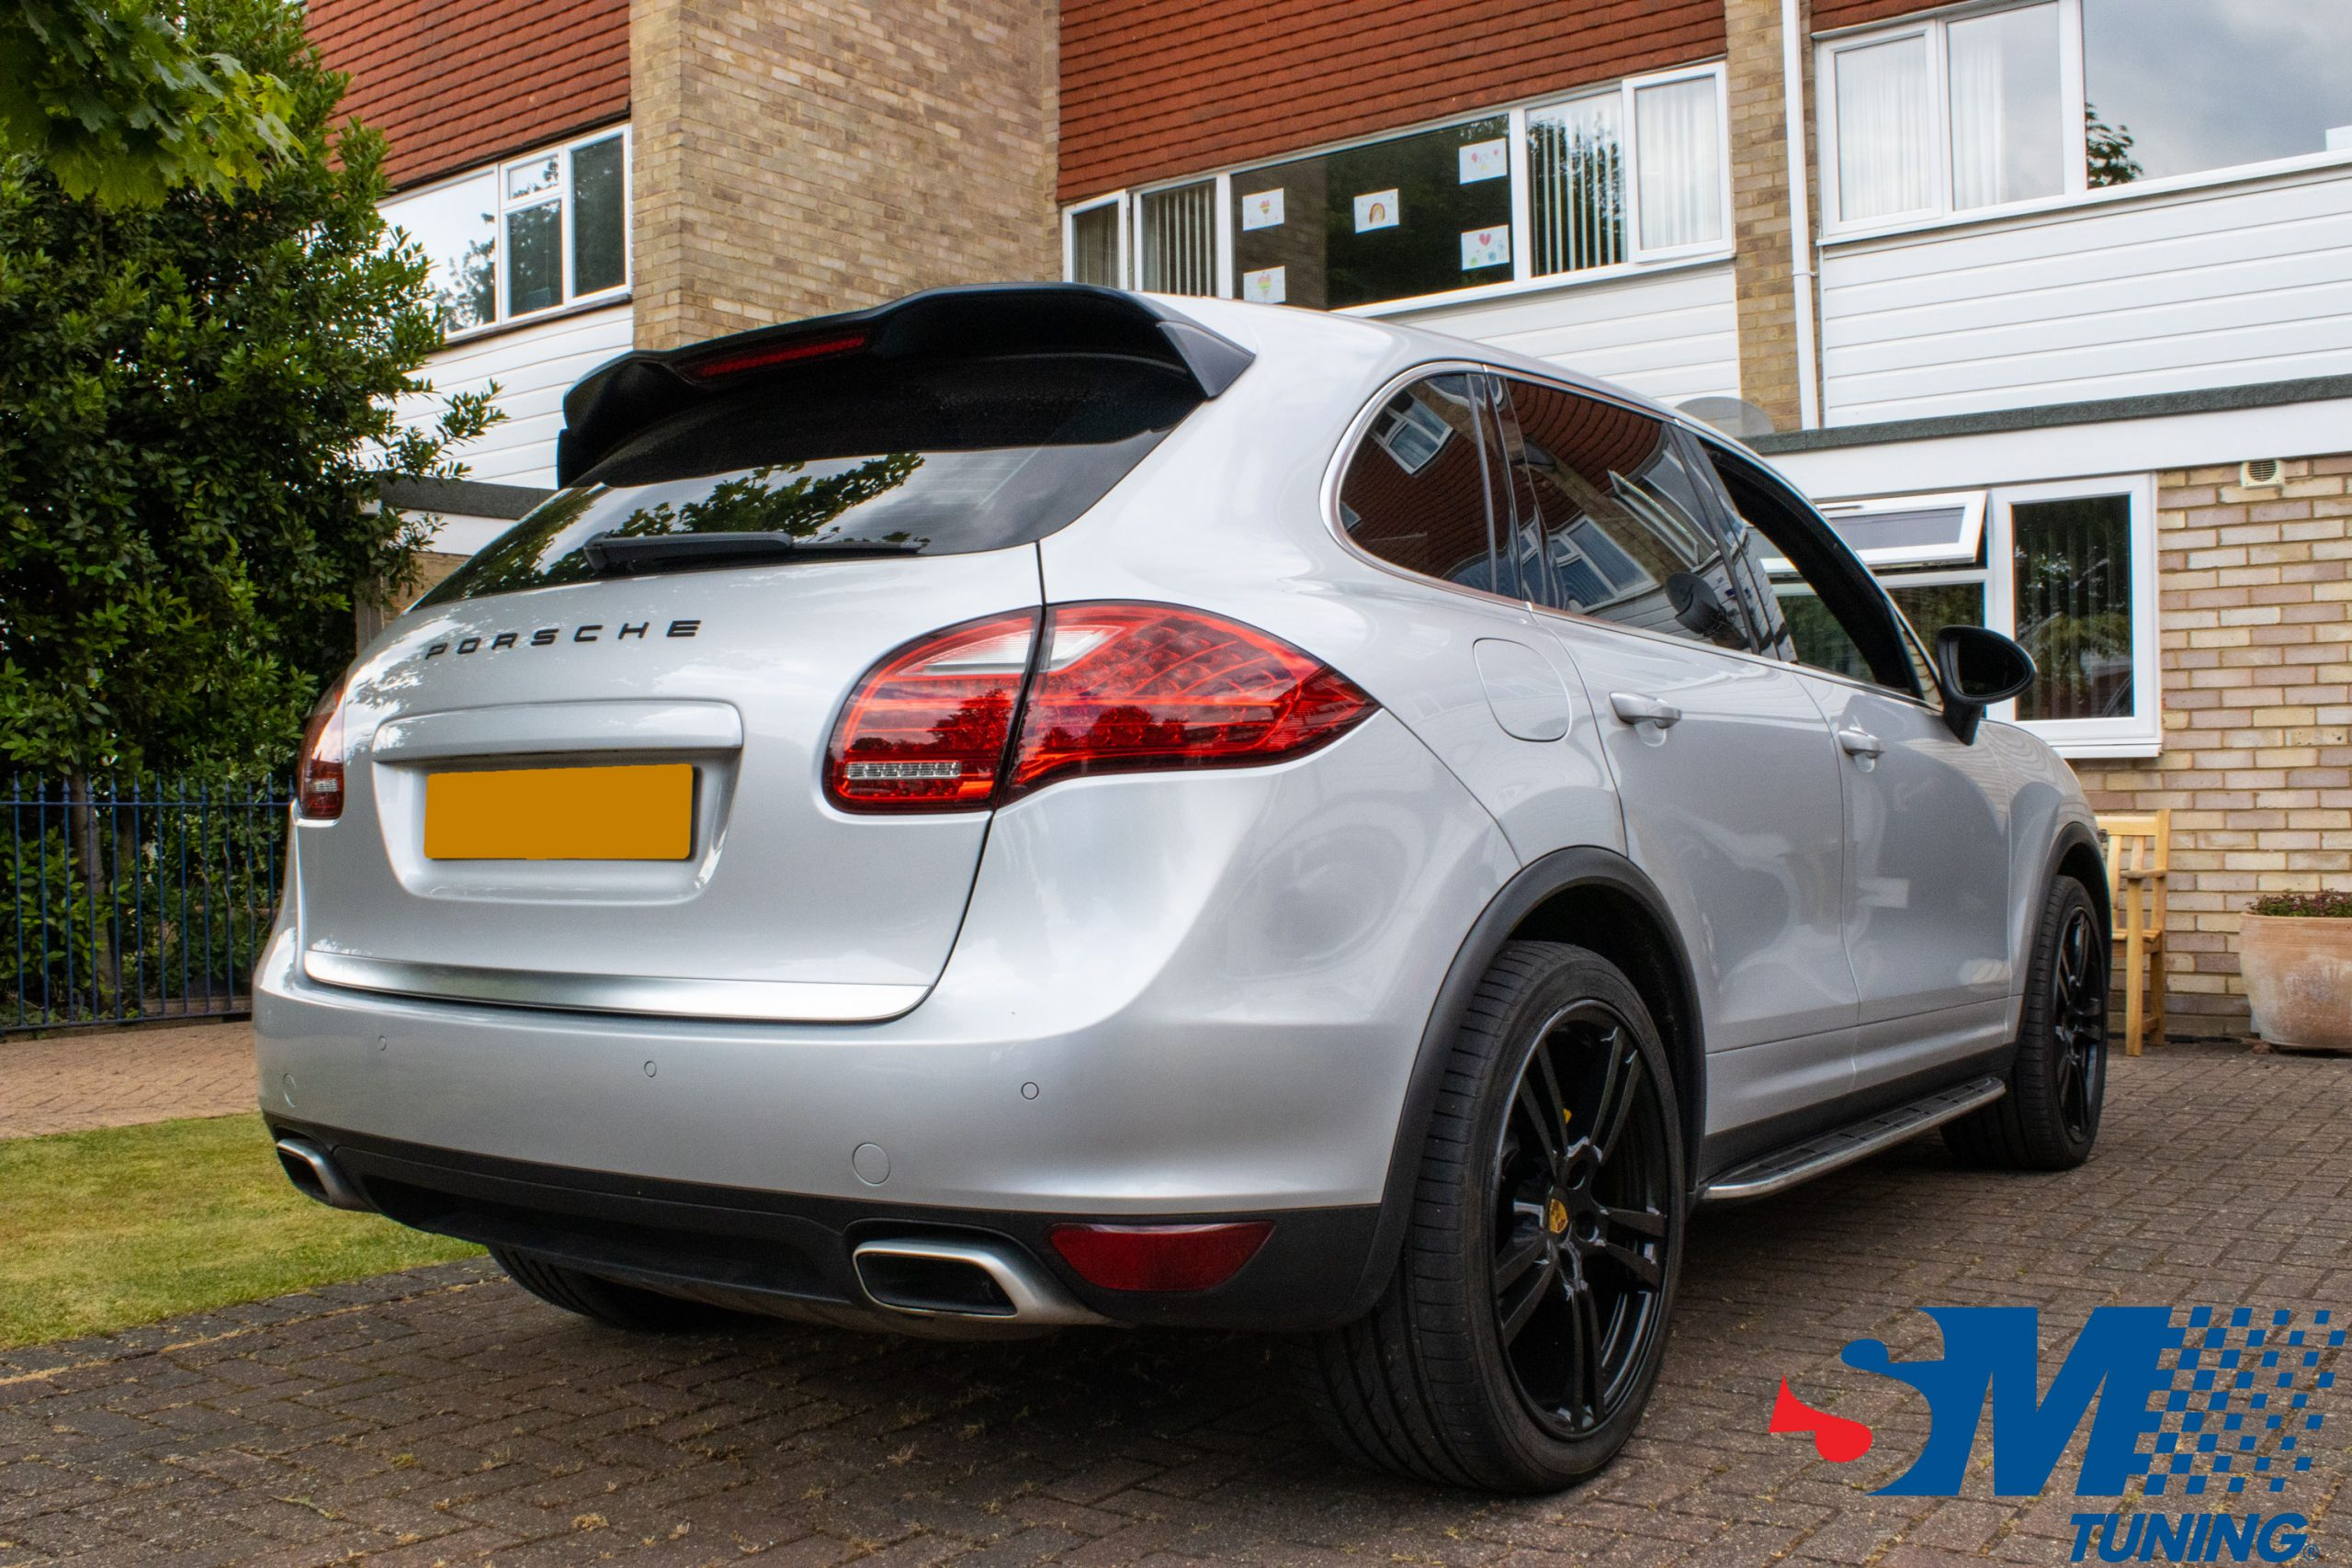 Porsche Cayenne 2011 3.0 V6 TDi tuned in Windsor, Berkshire.